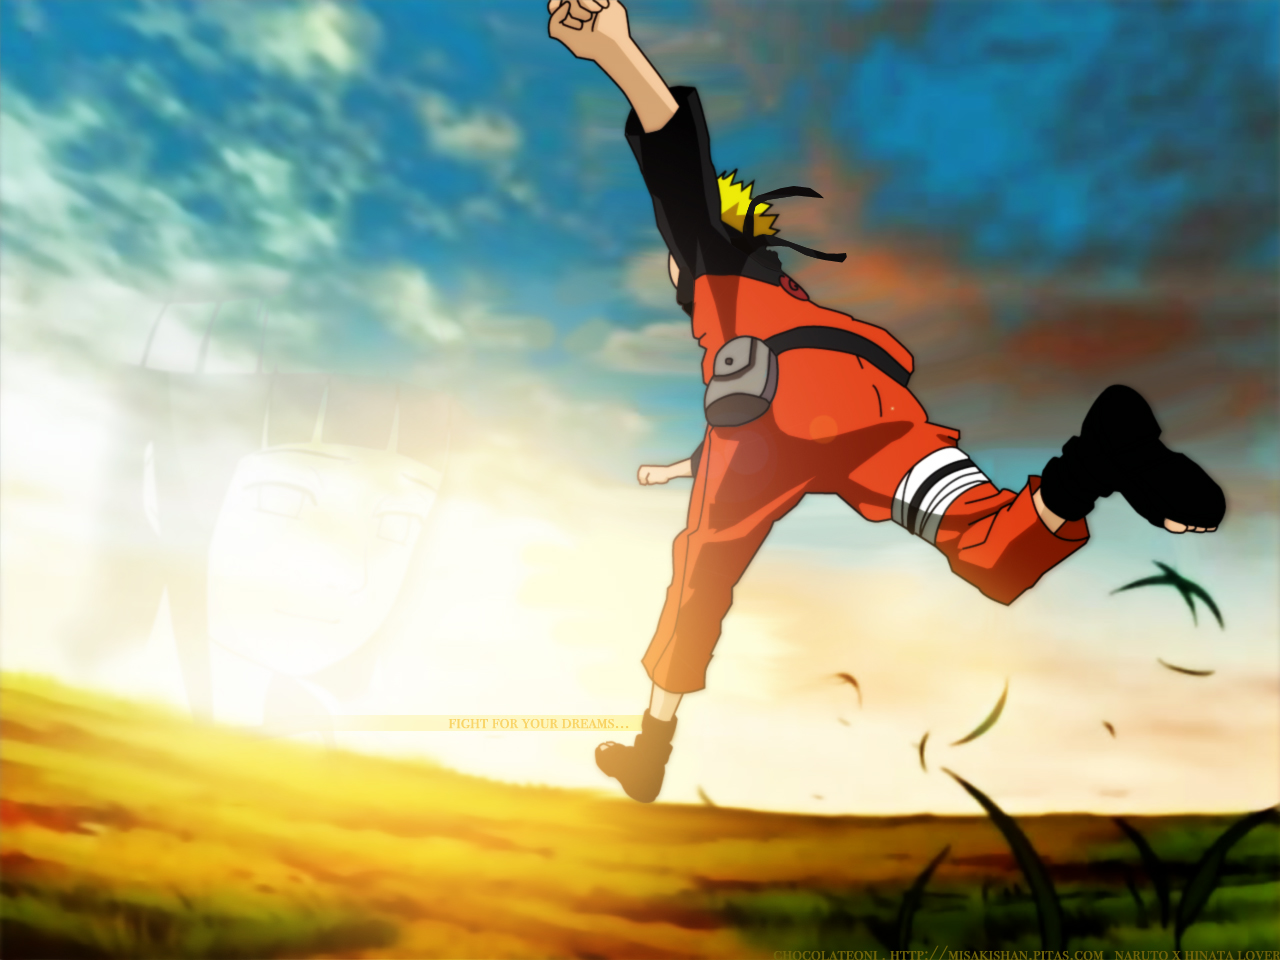 Love come Back Wallpaper : Free Download Anime Wallpaper Naruto Shipuden ( Naruto Movie ) Free Anime Wallpapers